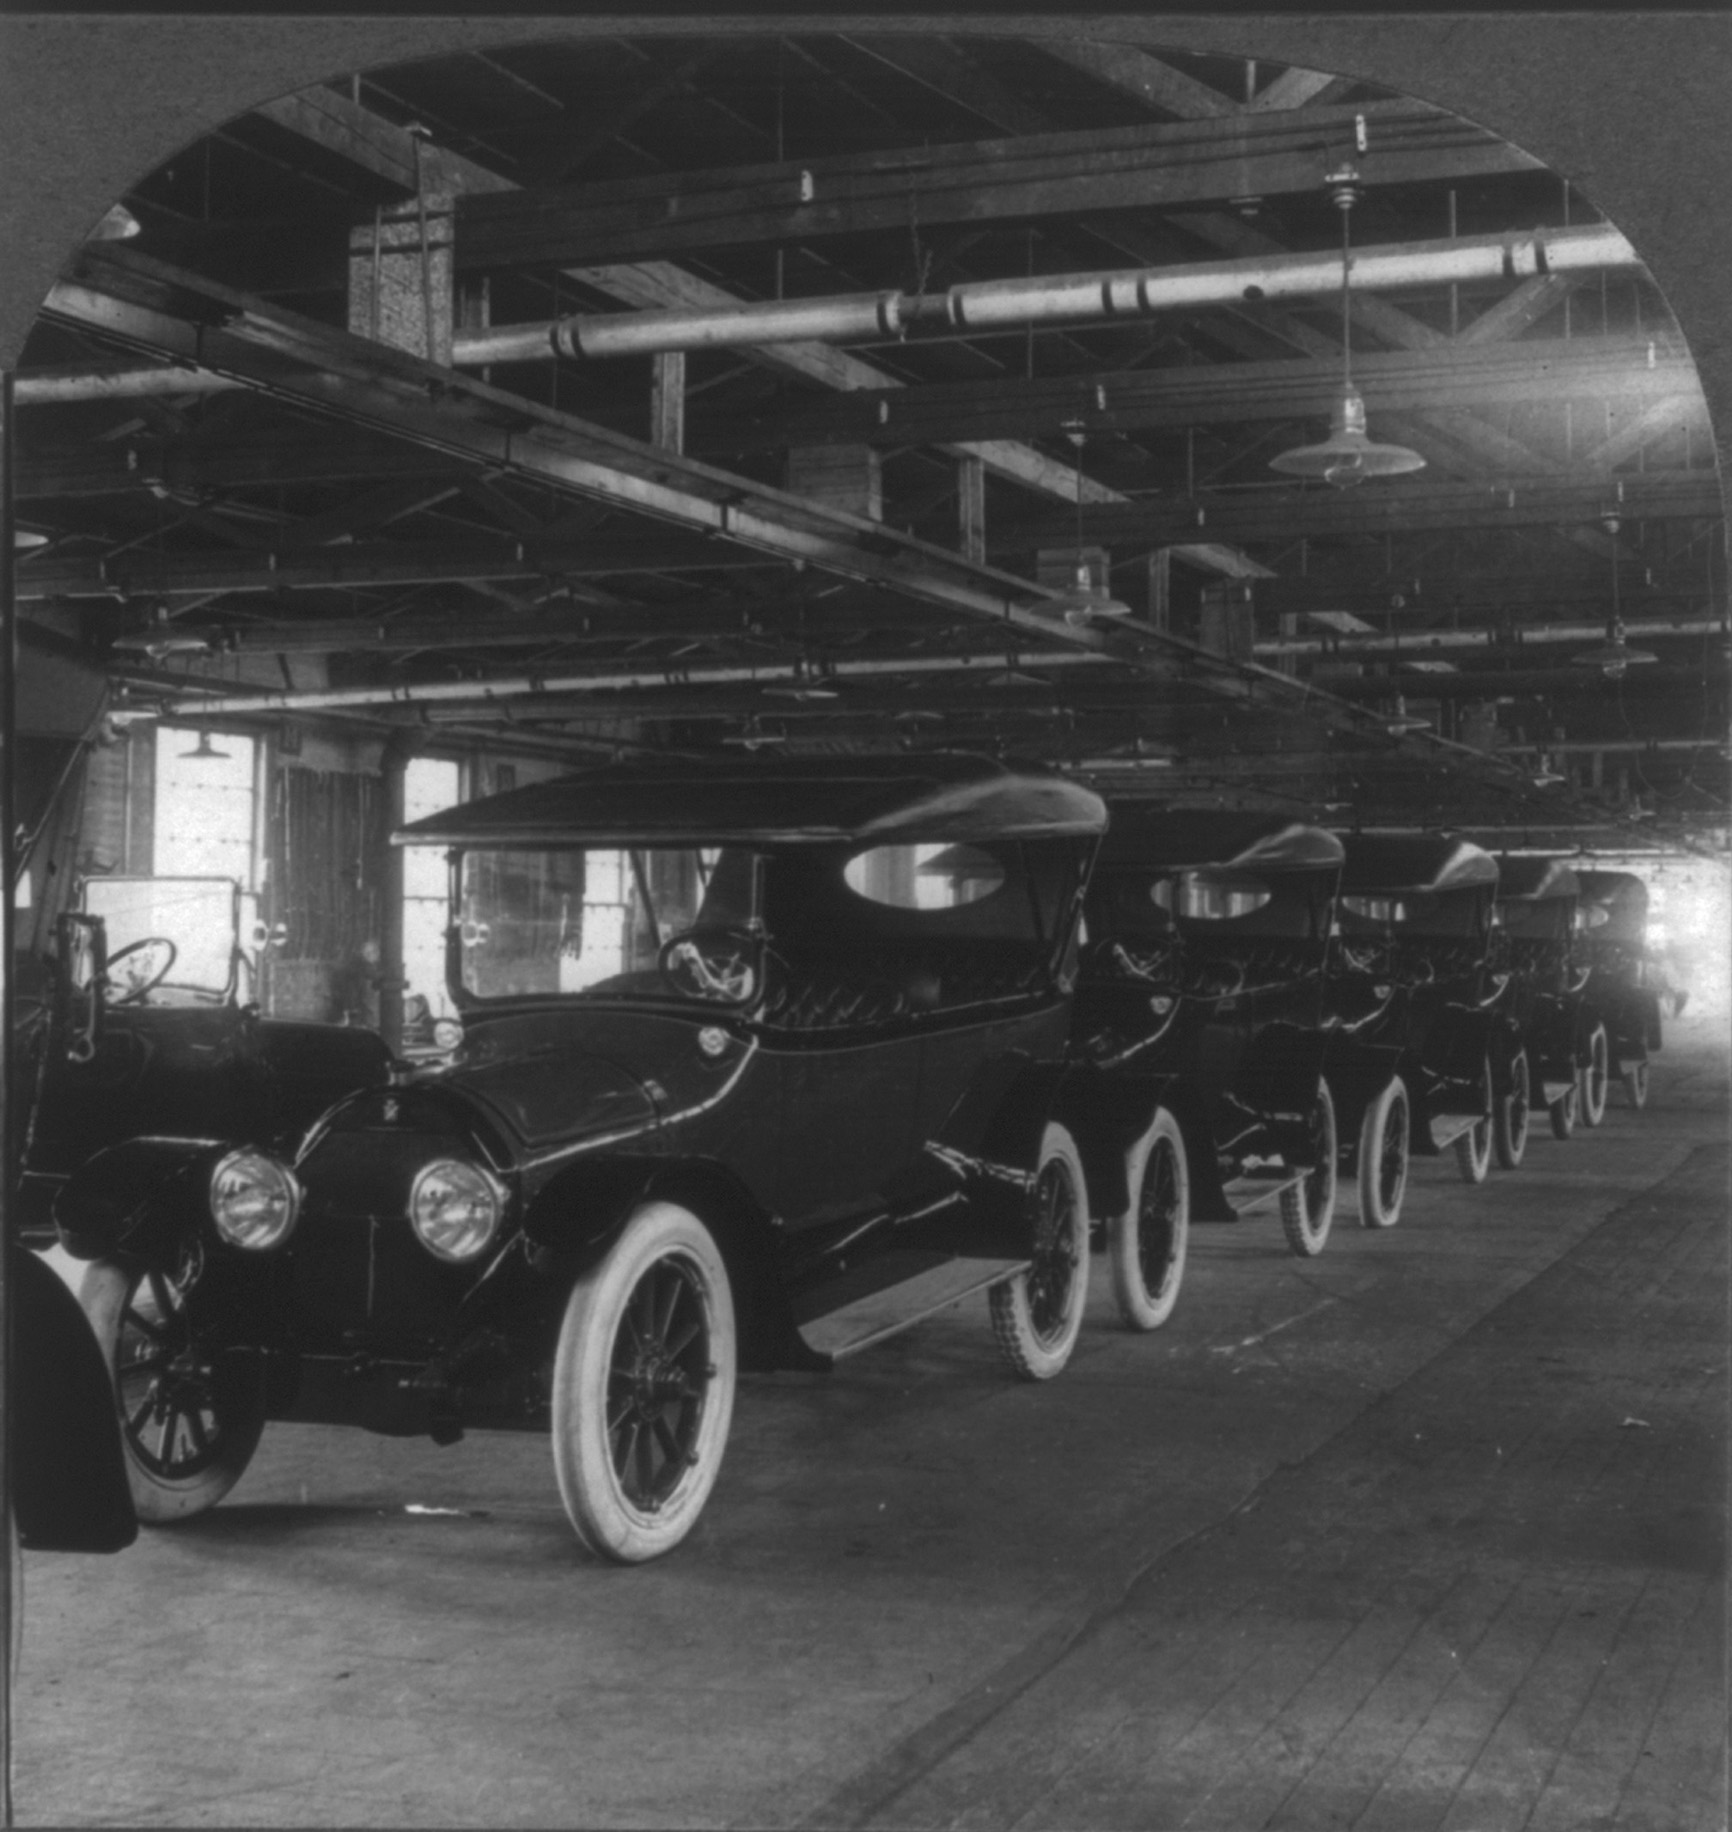 The Ford Model T coming off the production line at the Ford Motor Company Plant at N Broad Street and Lehigh Avenue, c. 1917 |